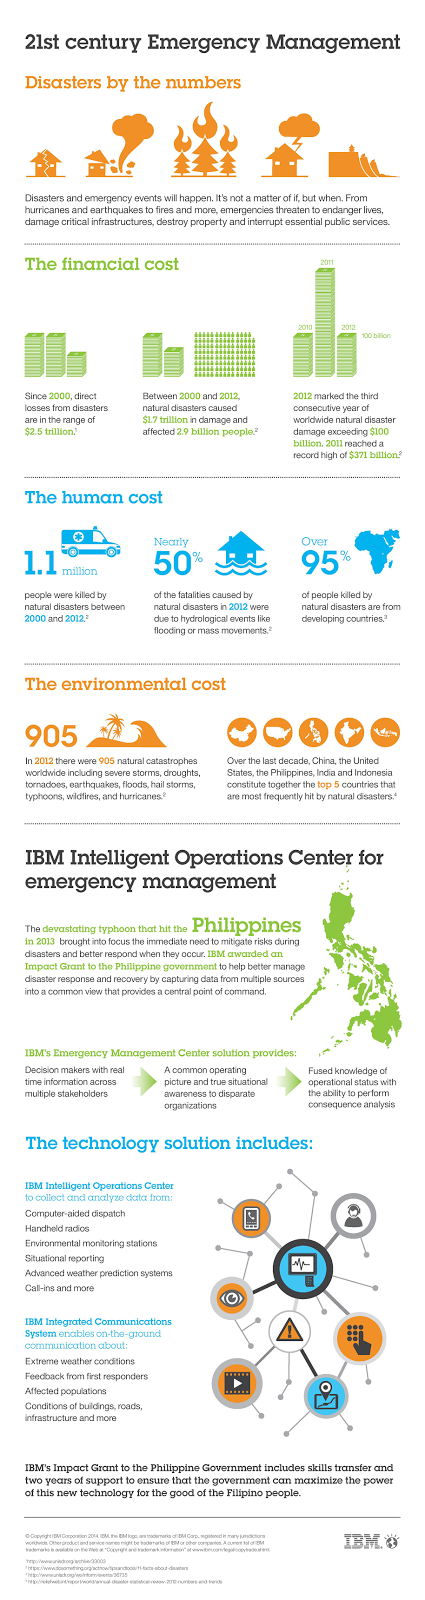 IBM IOC for the Philippines